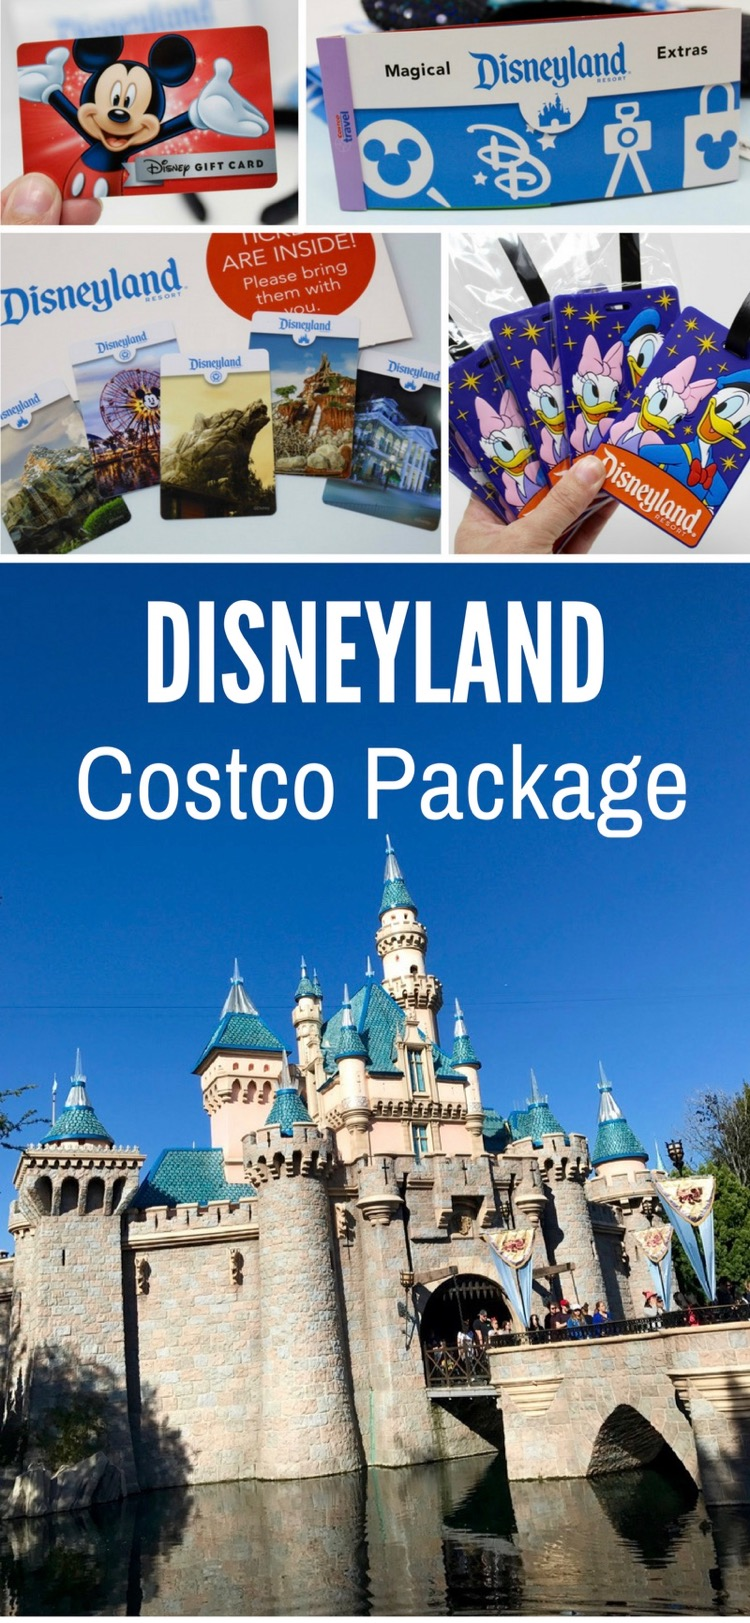 Disneyland Costco Package Deals - Disney trip deals